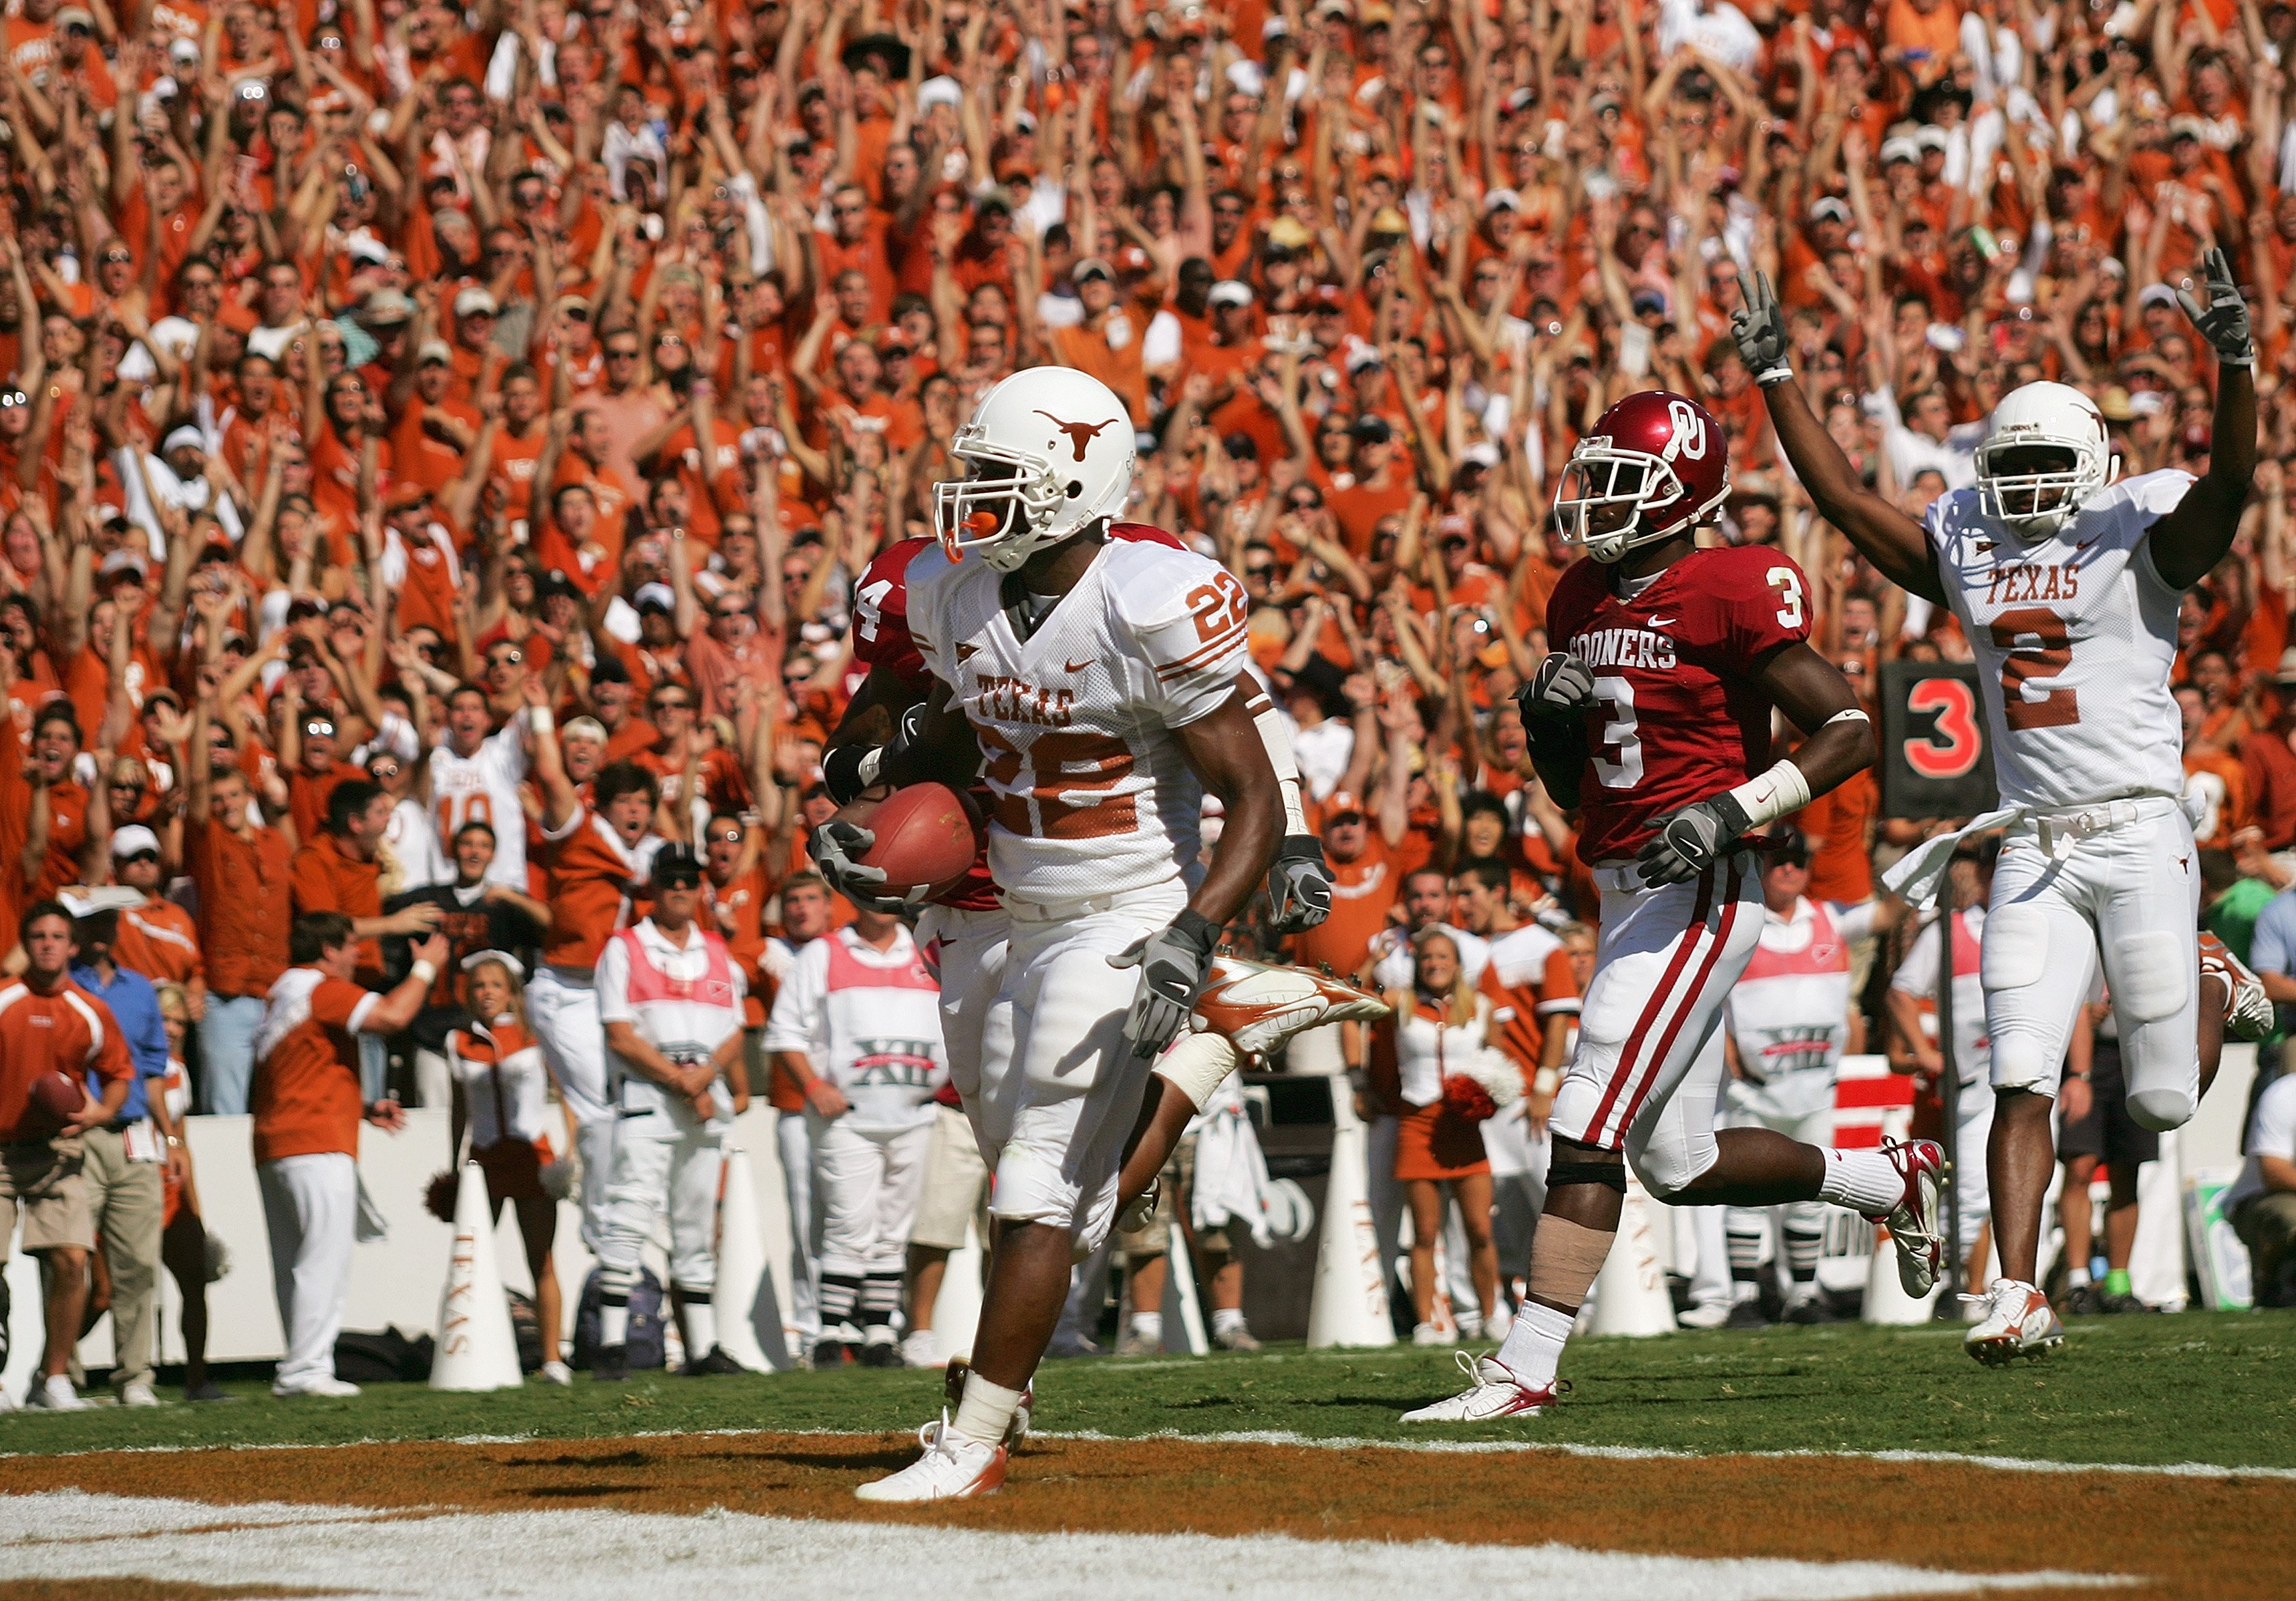 DALLAS - OCTOBER 7:  Running back Selvin Young #22 of the Texas Longhorns runs for a touchdown against the Oklahoma Sooners during the Red River Shootout at the Cotton Bowl on October 7, 2006 in Dallas, Texas. The Longhorns won 28-10. (Photo by Ronald Mar